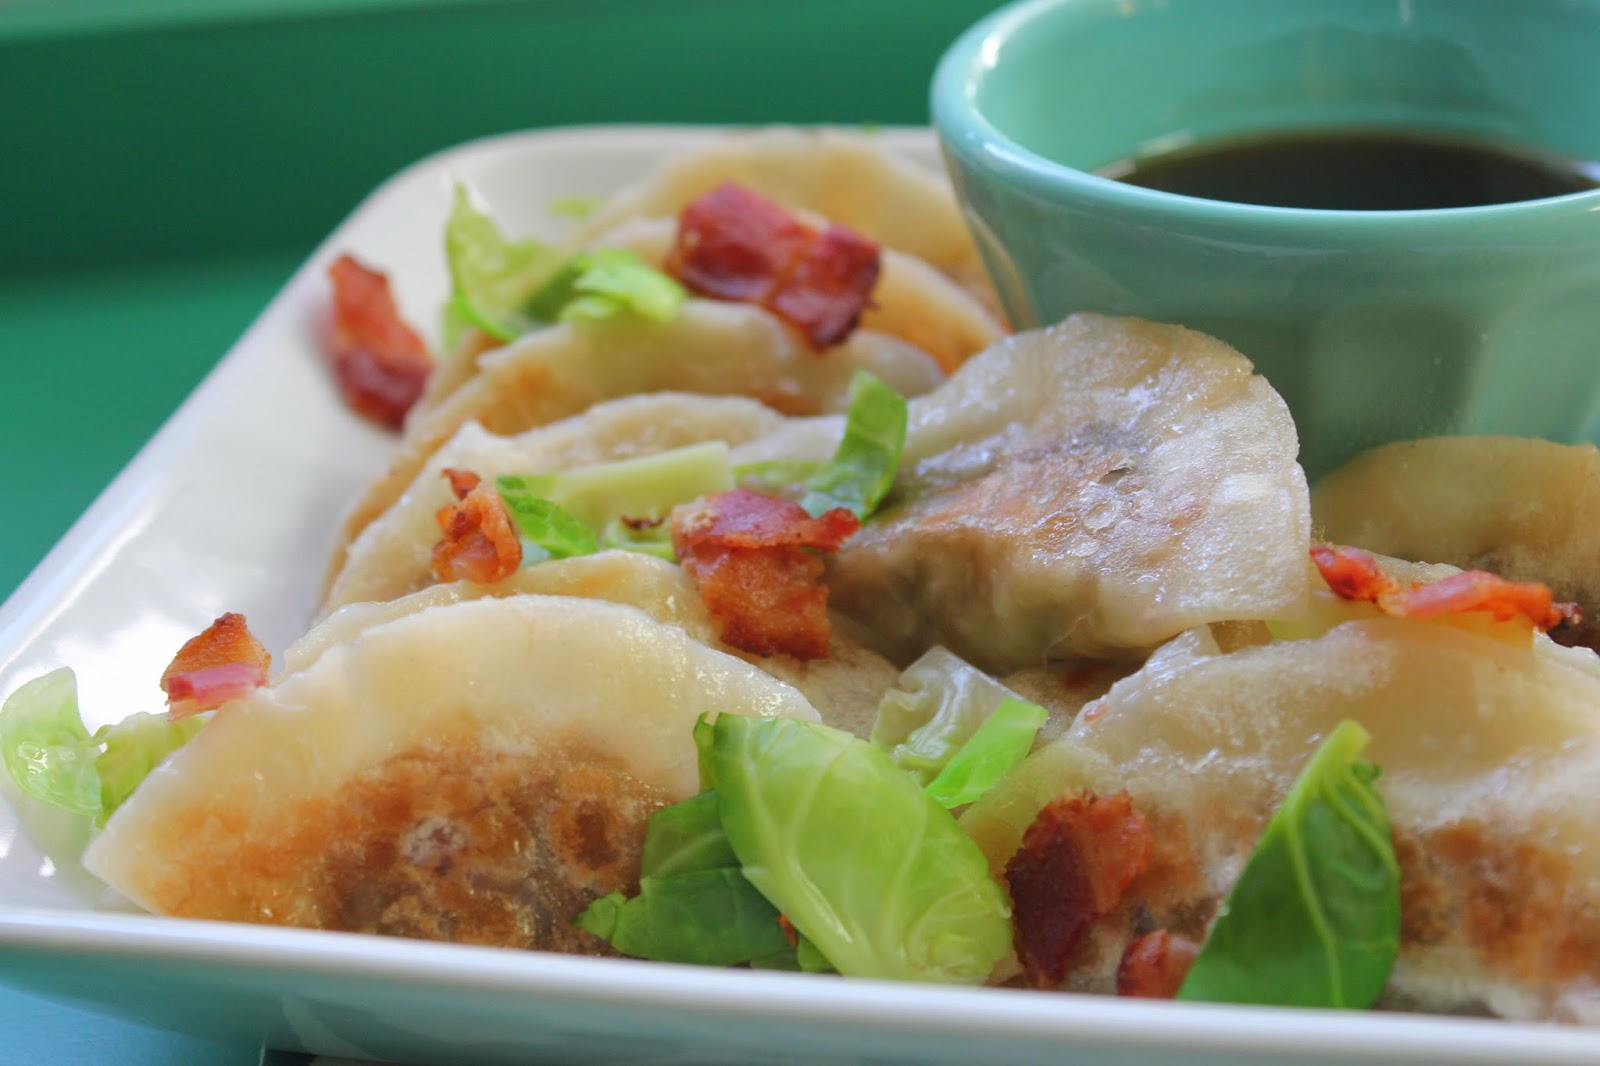 ... : Brussels Sprouts And Bacon Dumplings From Dumplings All Day Wong